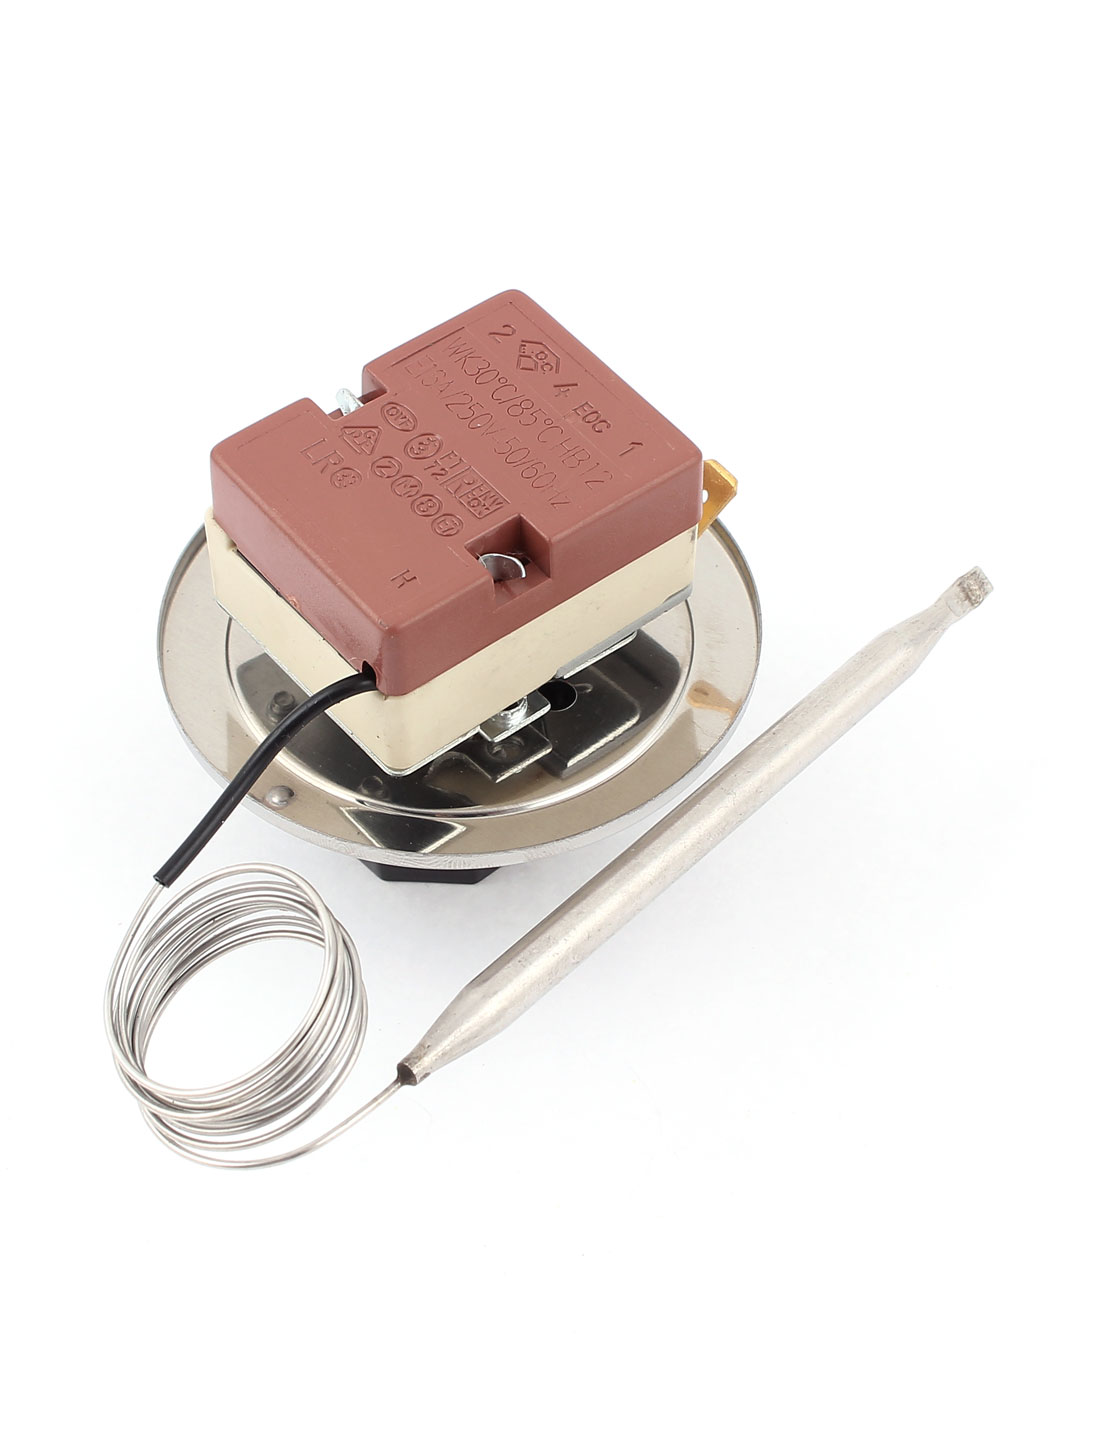 Nc adjustable temperature control switch thermostat to